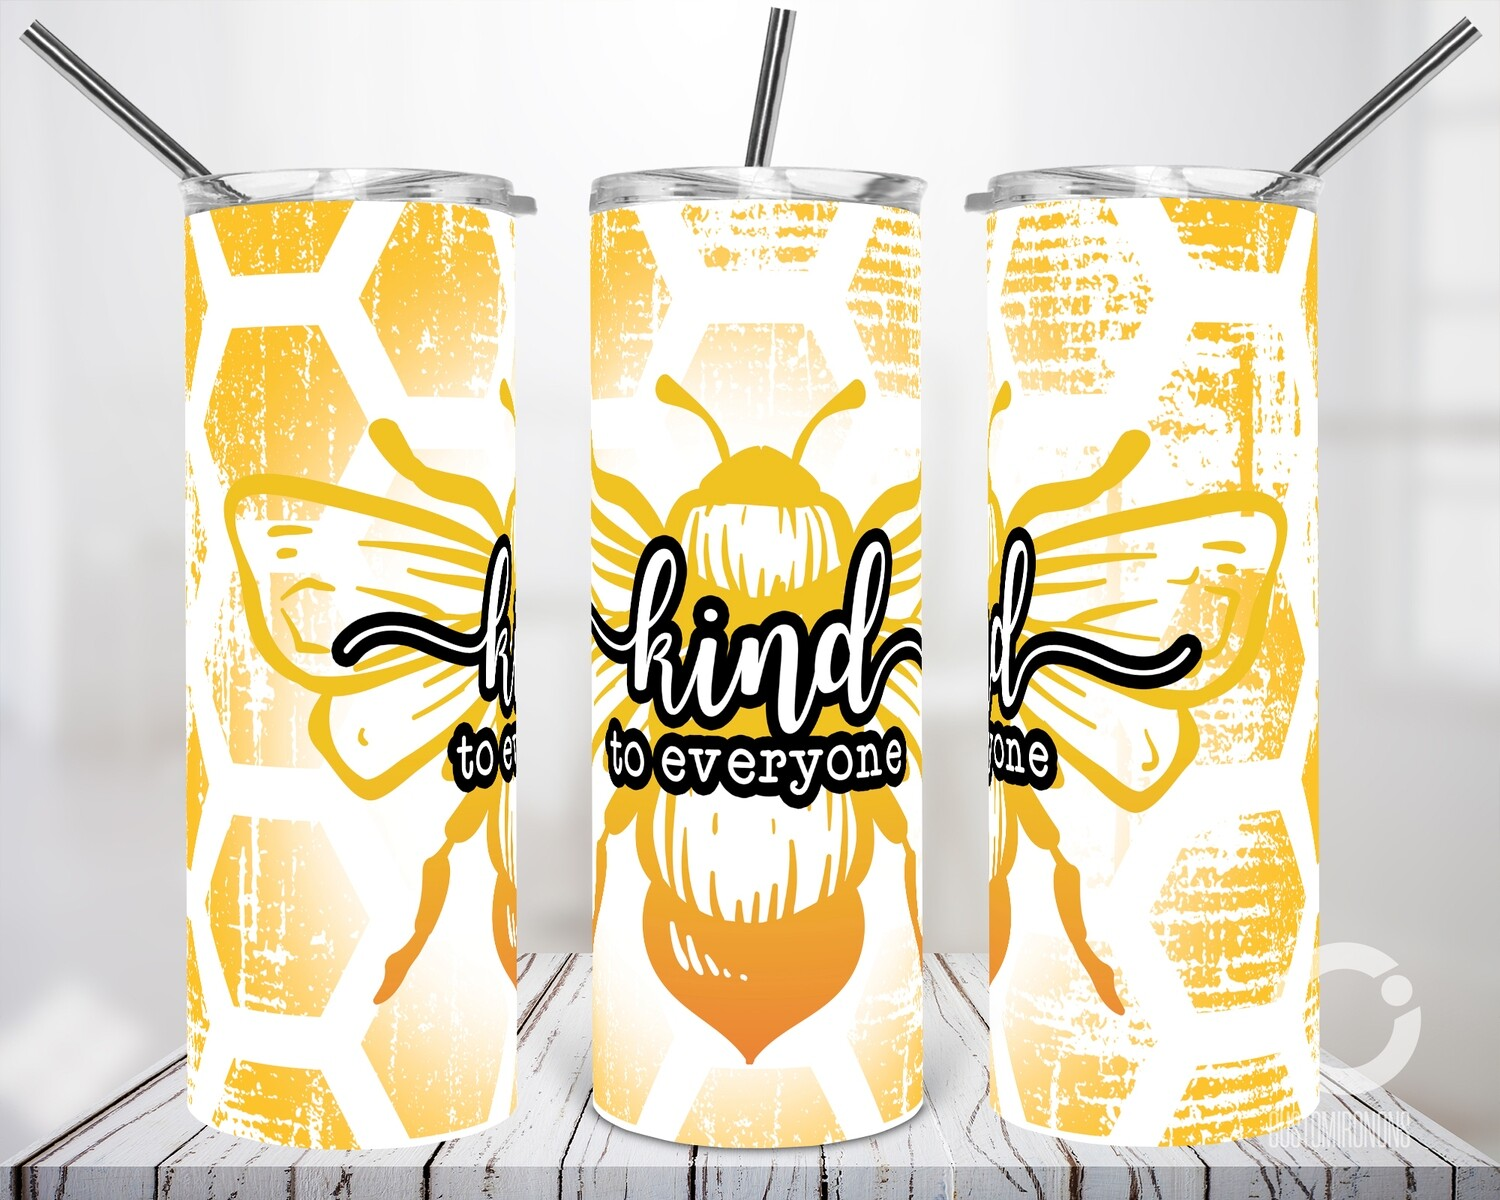 Bee Kind (Includes blank version) 20oz Tumbler